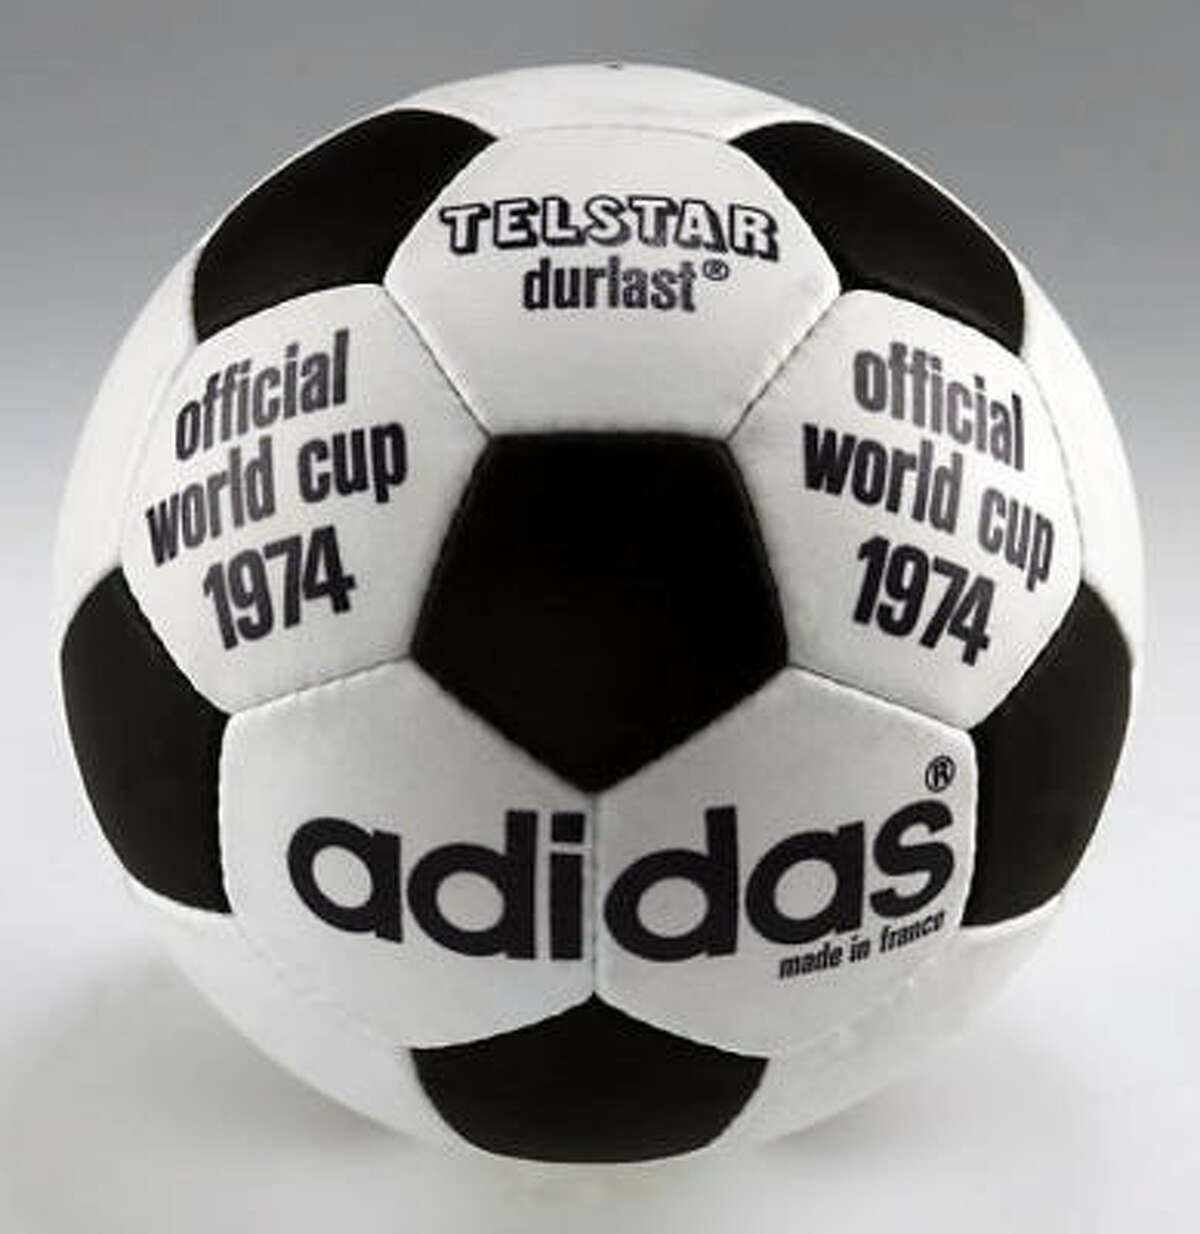 West Germany 1974: Telstar Duralast The ball didn't change much in four years. The lettering was in black instead of gold.